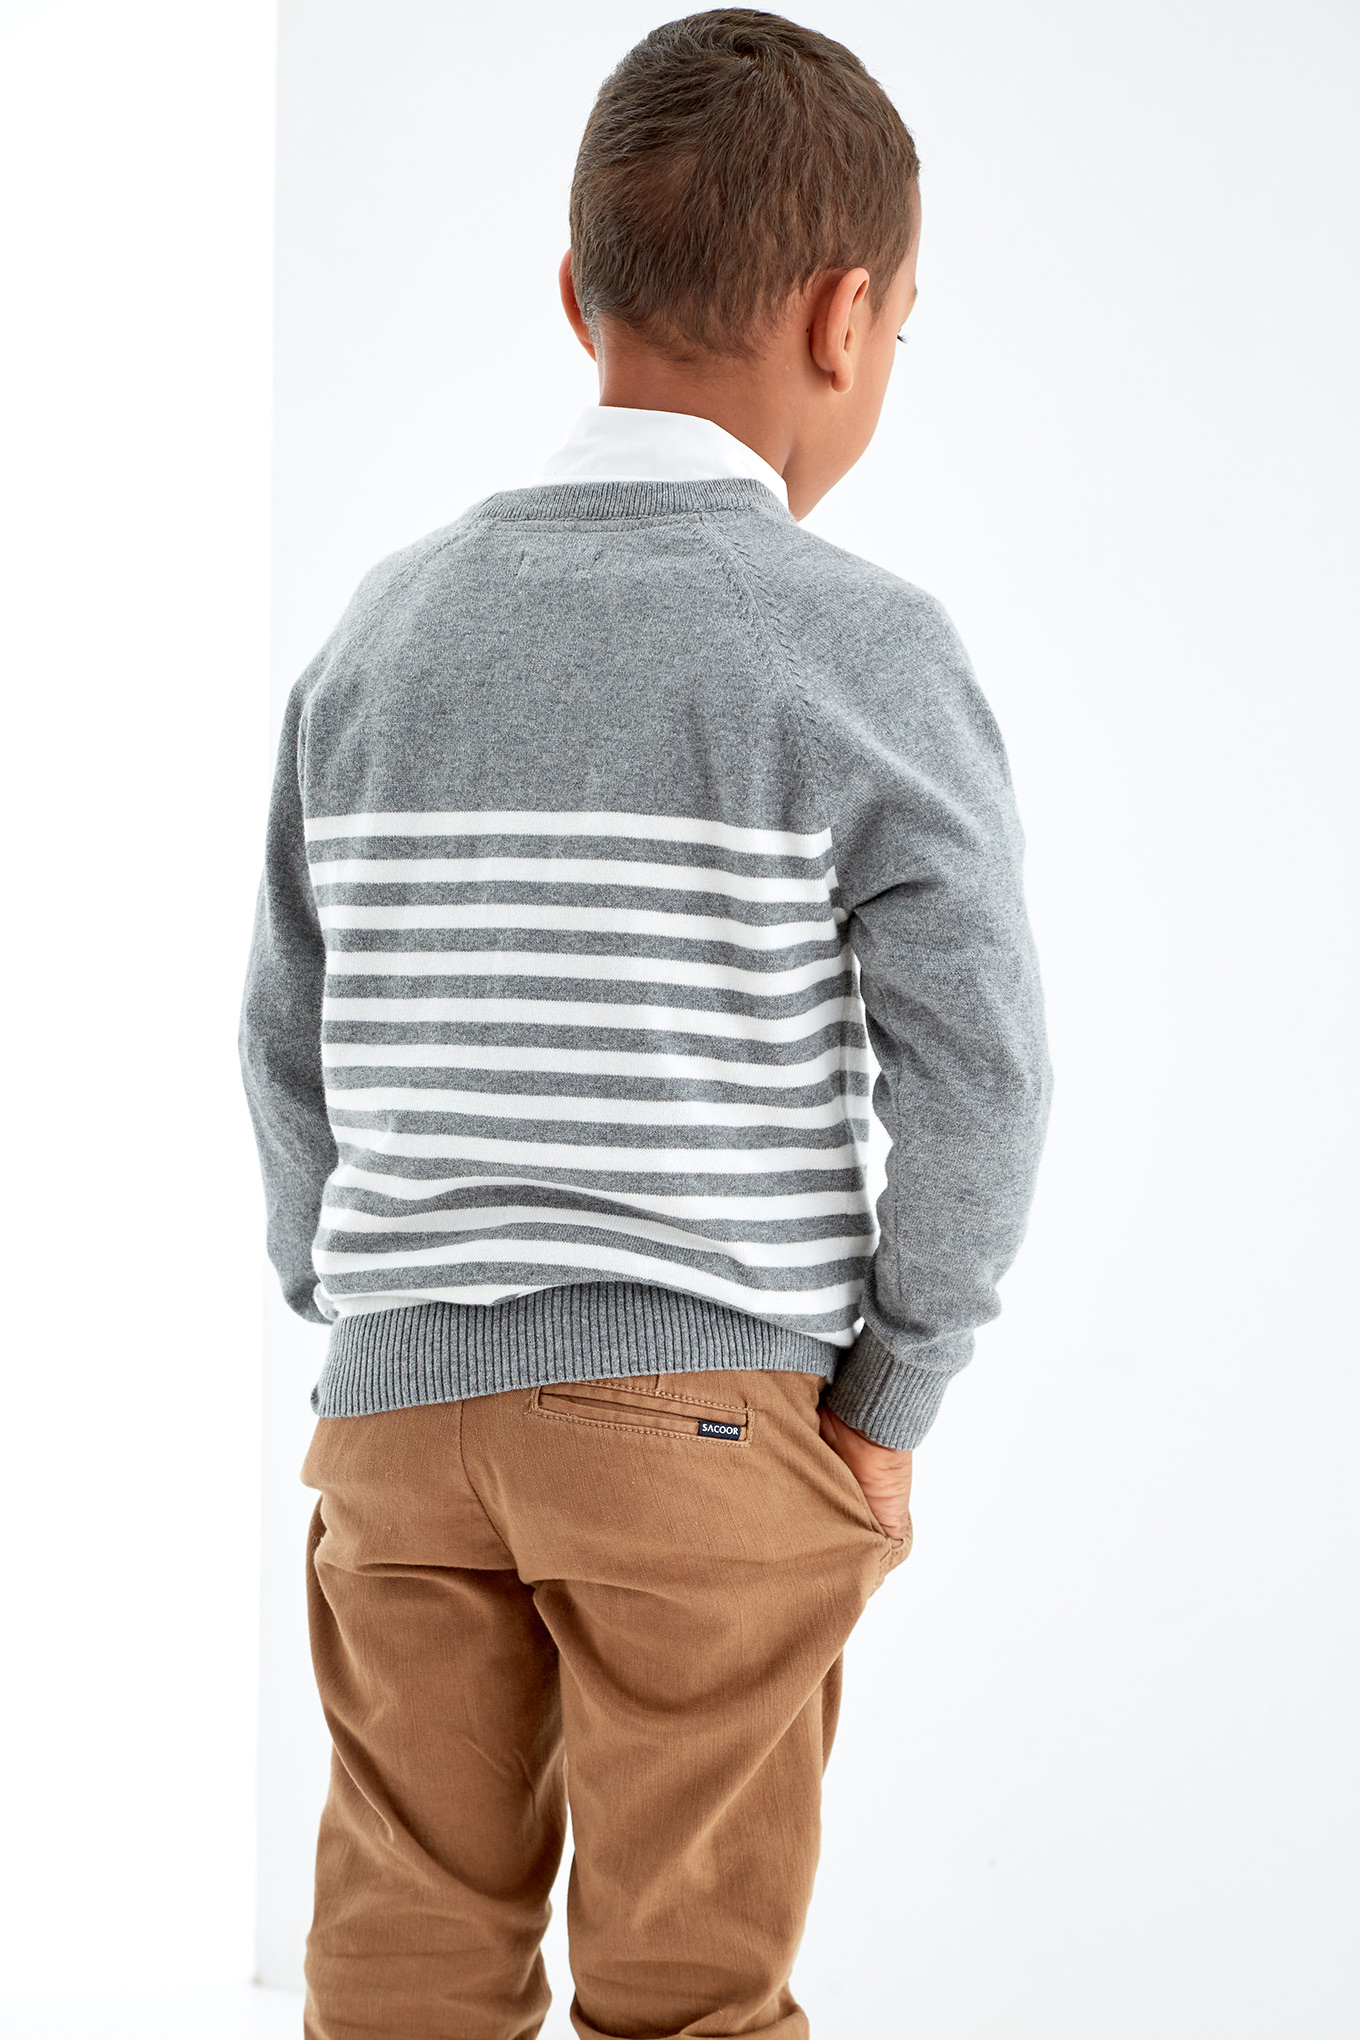 Sweater Stripes Casual Boy